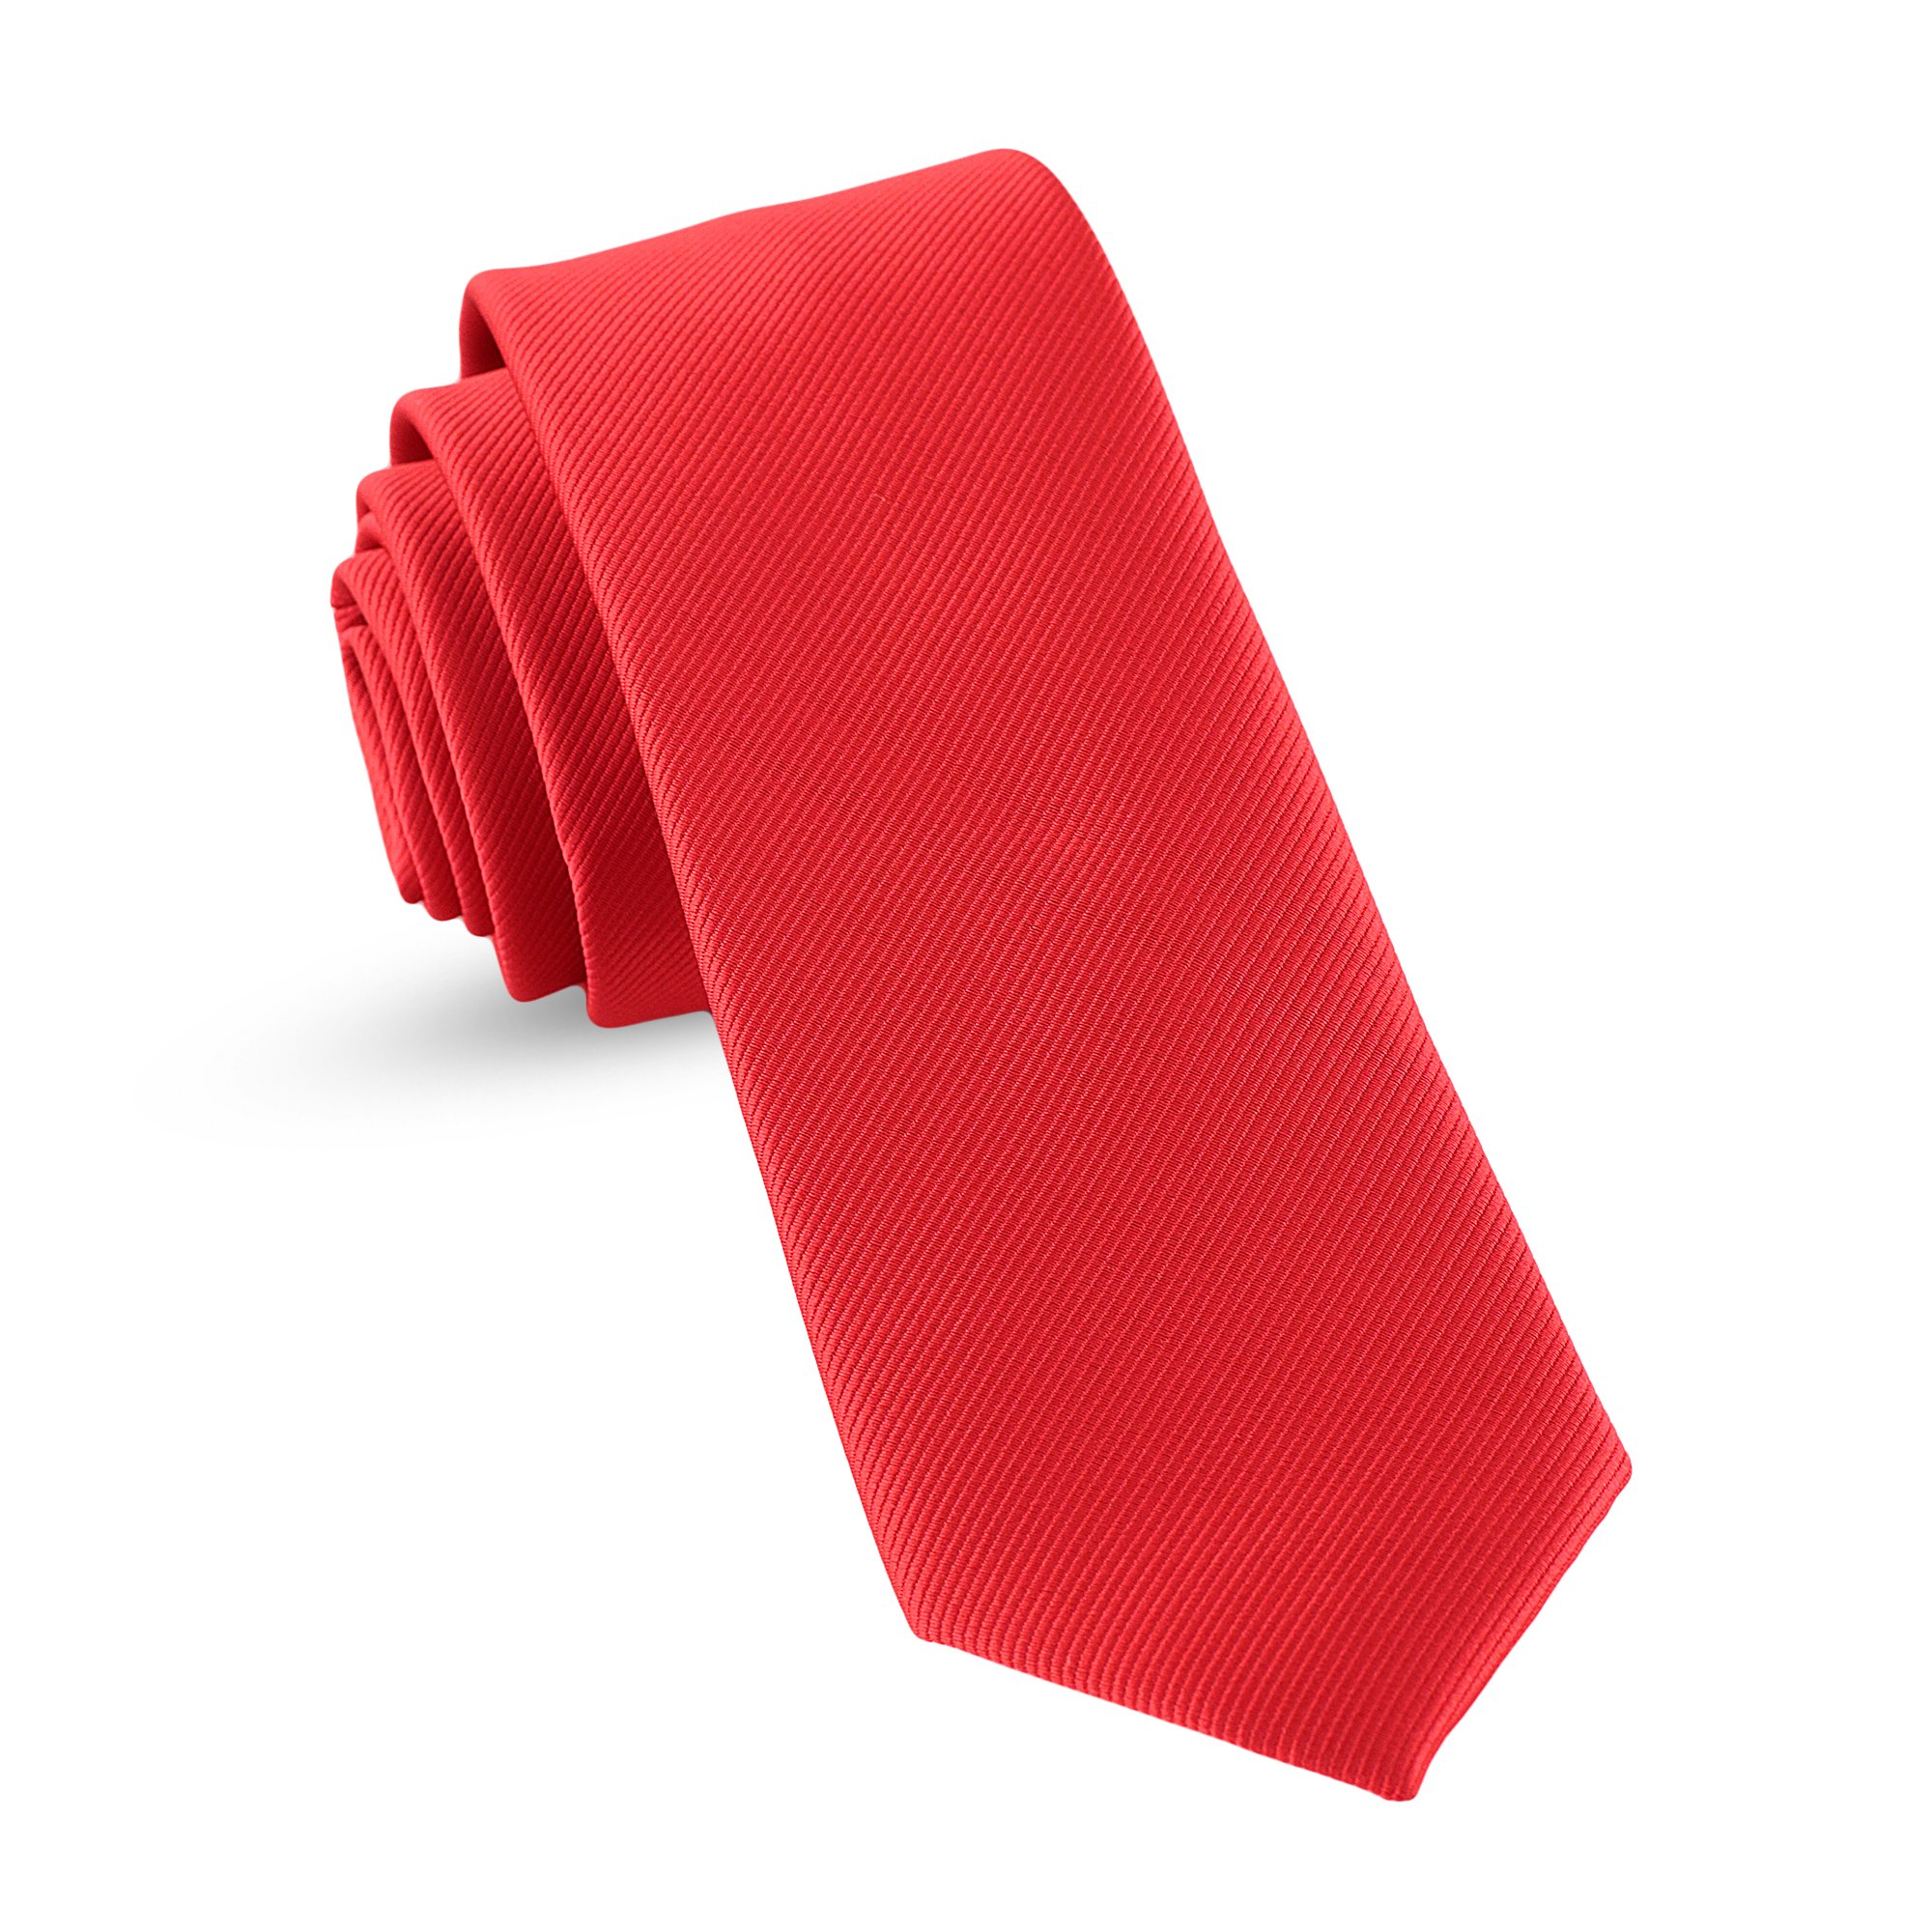 Handmade Self Tie Ties For Boys Woven Boys Red Ties: Neckties For Kids Wedding Graduation